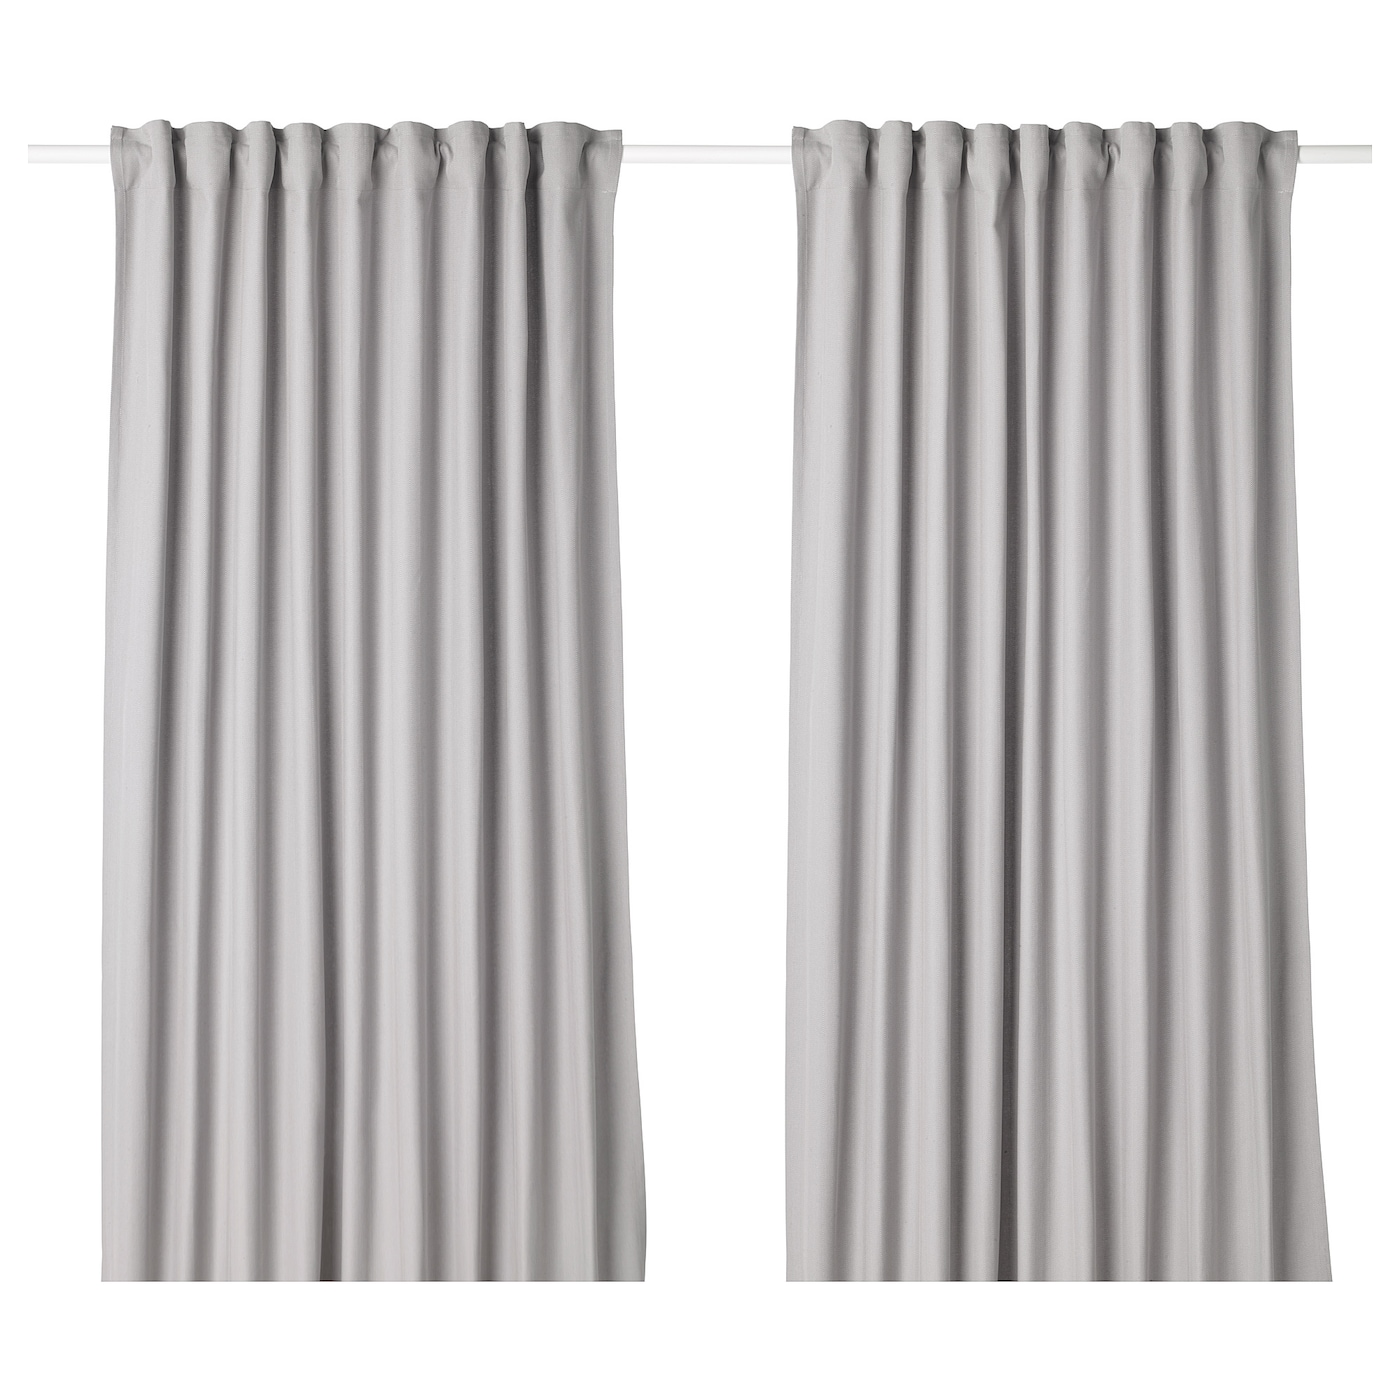 dollclique buffalo ideas curtains com panels tan navy kitchen vintage curtain plum and iron rods check wrought